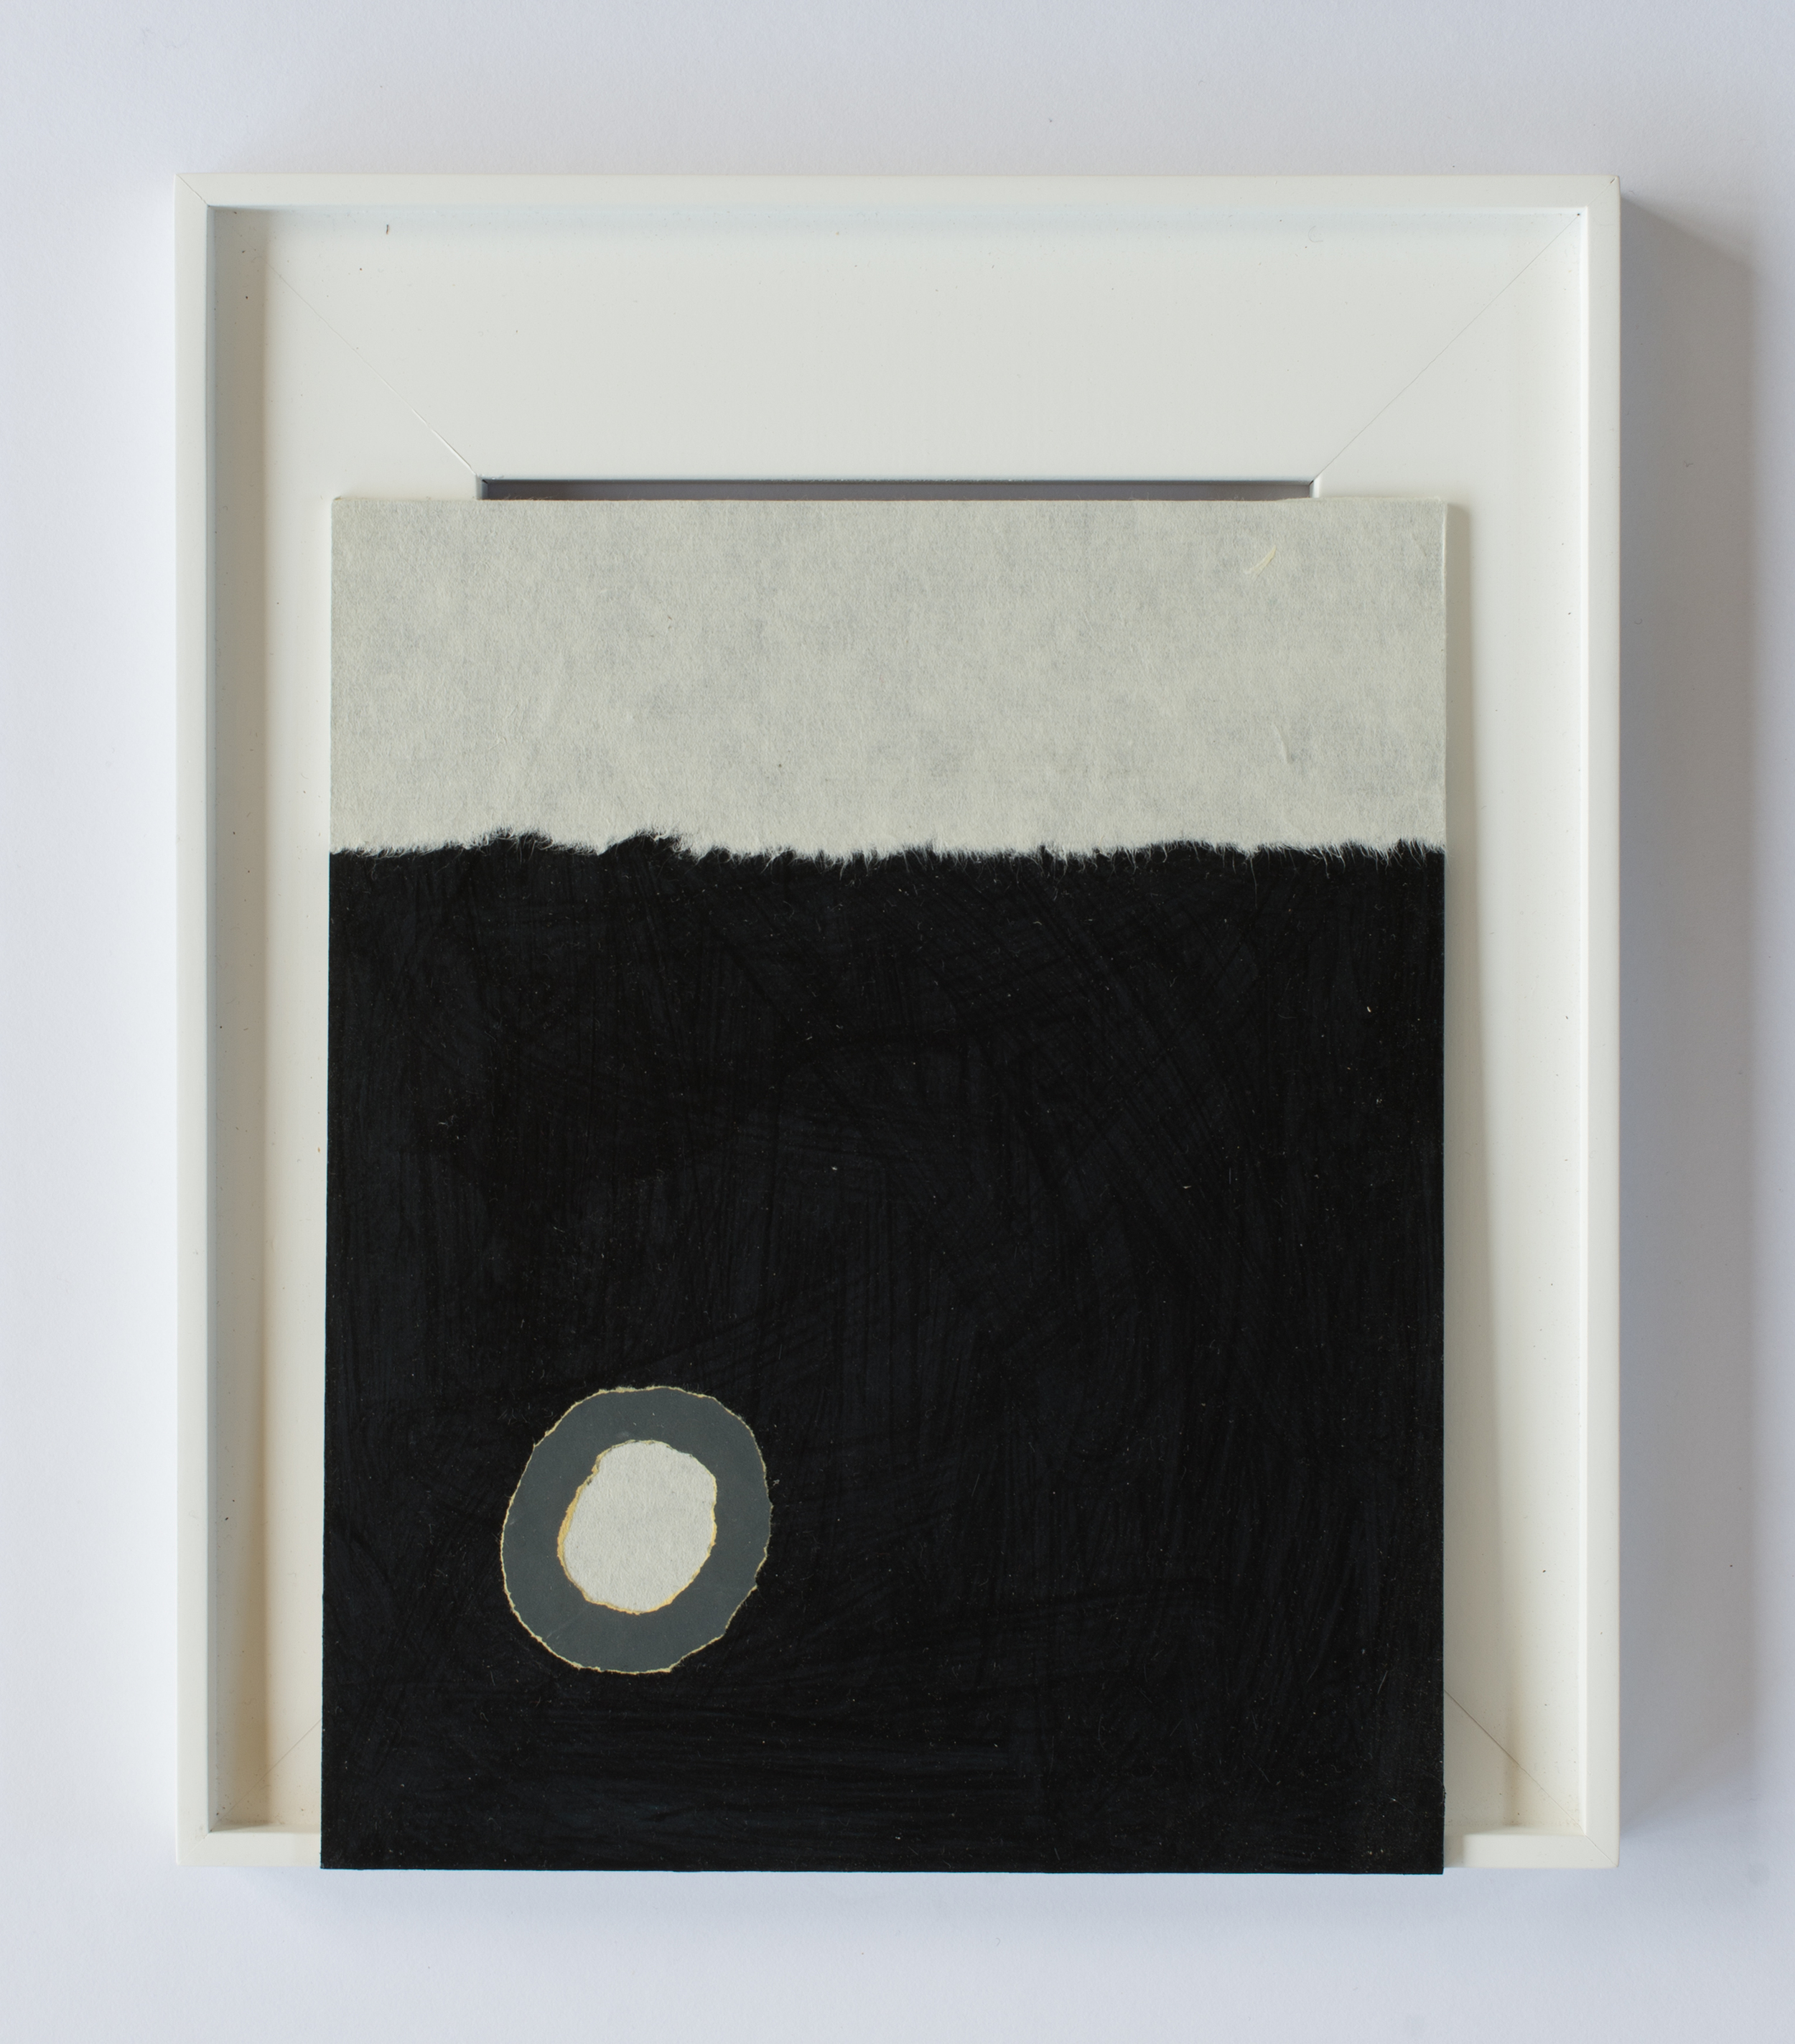 Peter Adsett, Painting number 14, 2014, Mixed material, 34.5 x 29.5 x 2.2cm, IMG X Tom Teutenberg.jpg